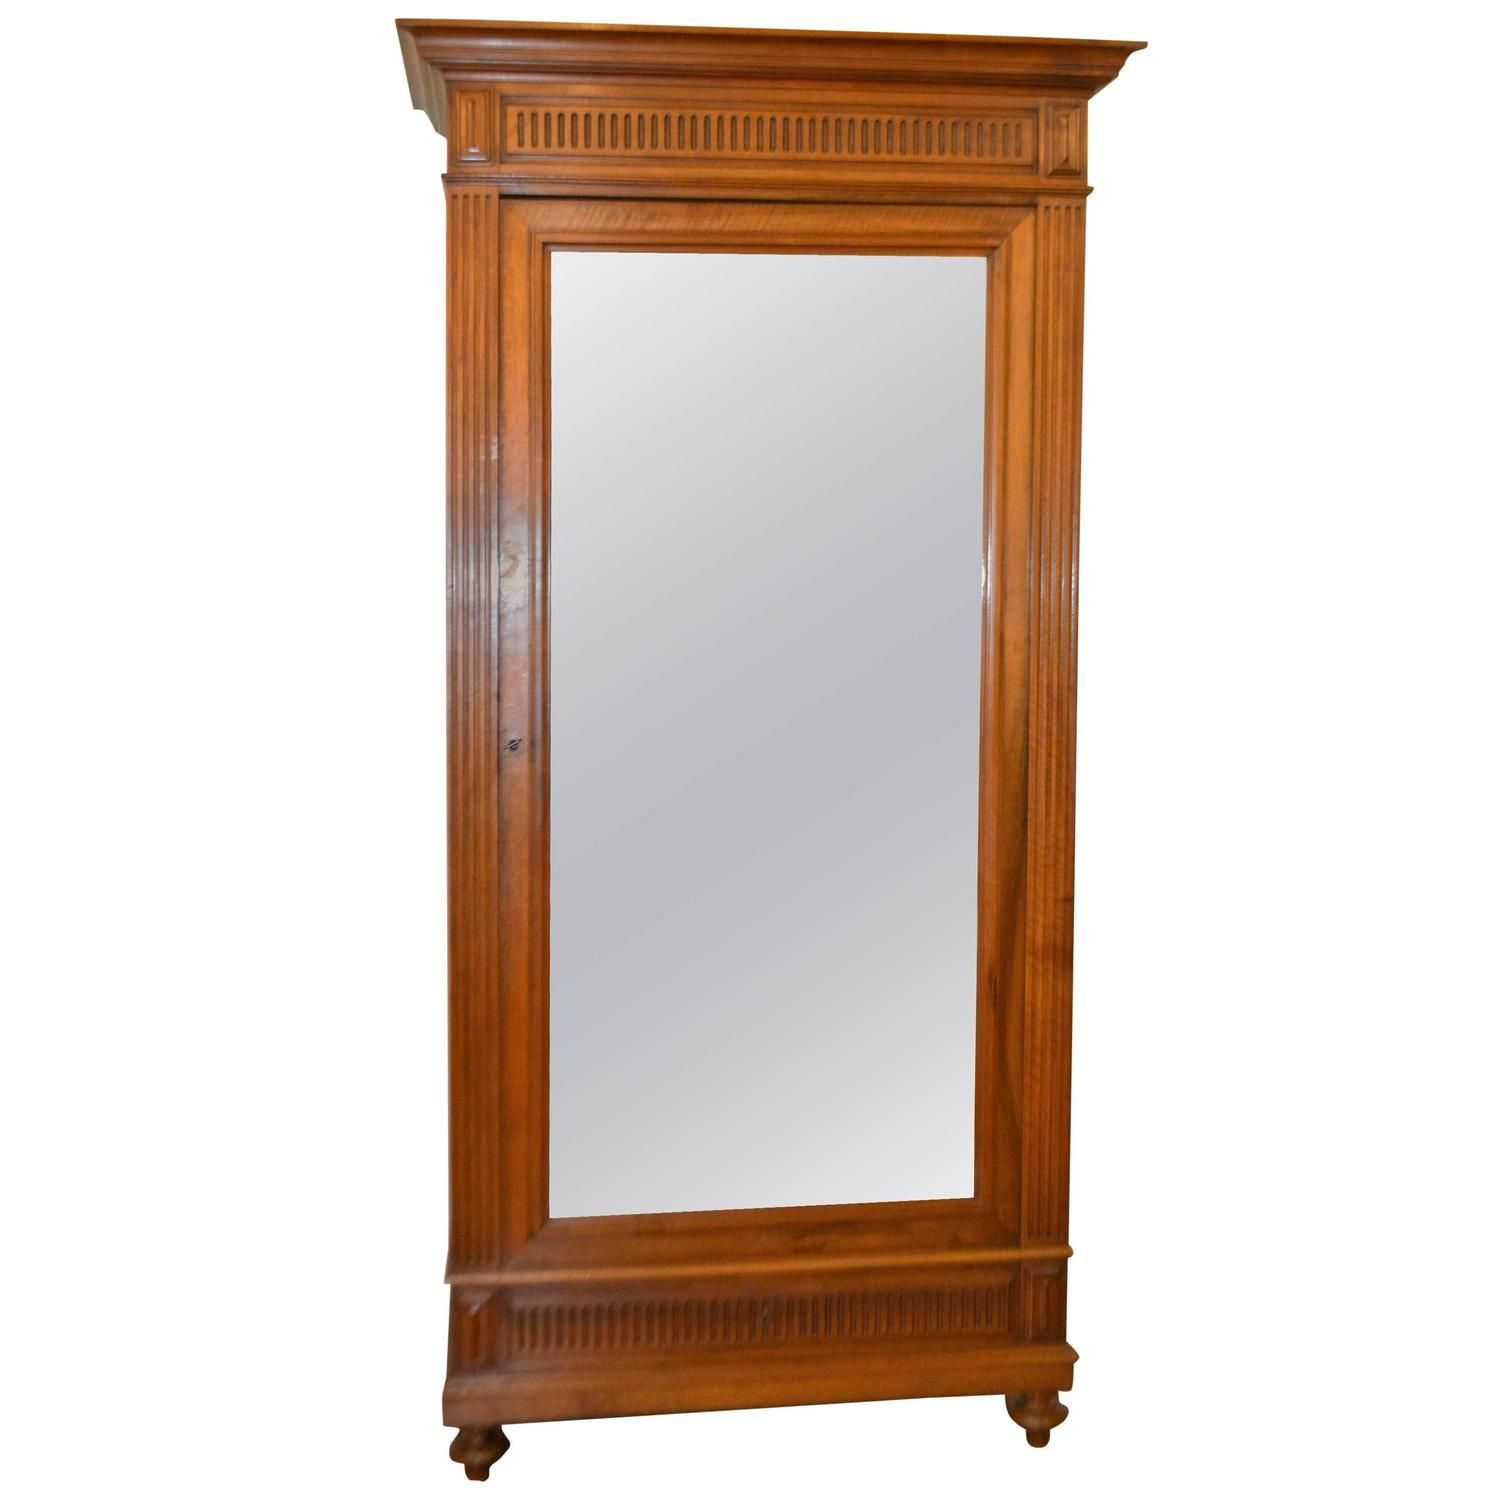 Marvelous Directoire Style Walnut One Door Armoire With Mirrored Door | From A Unique  Collection Of Antique And Modern Wardrobes And Armoires At ...